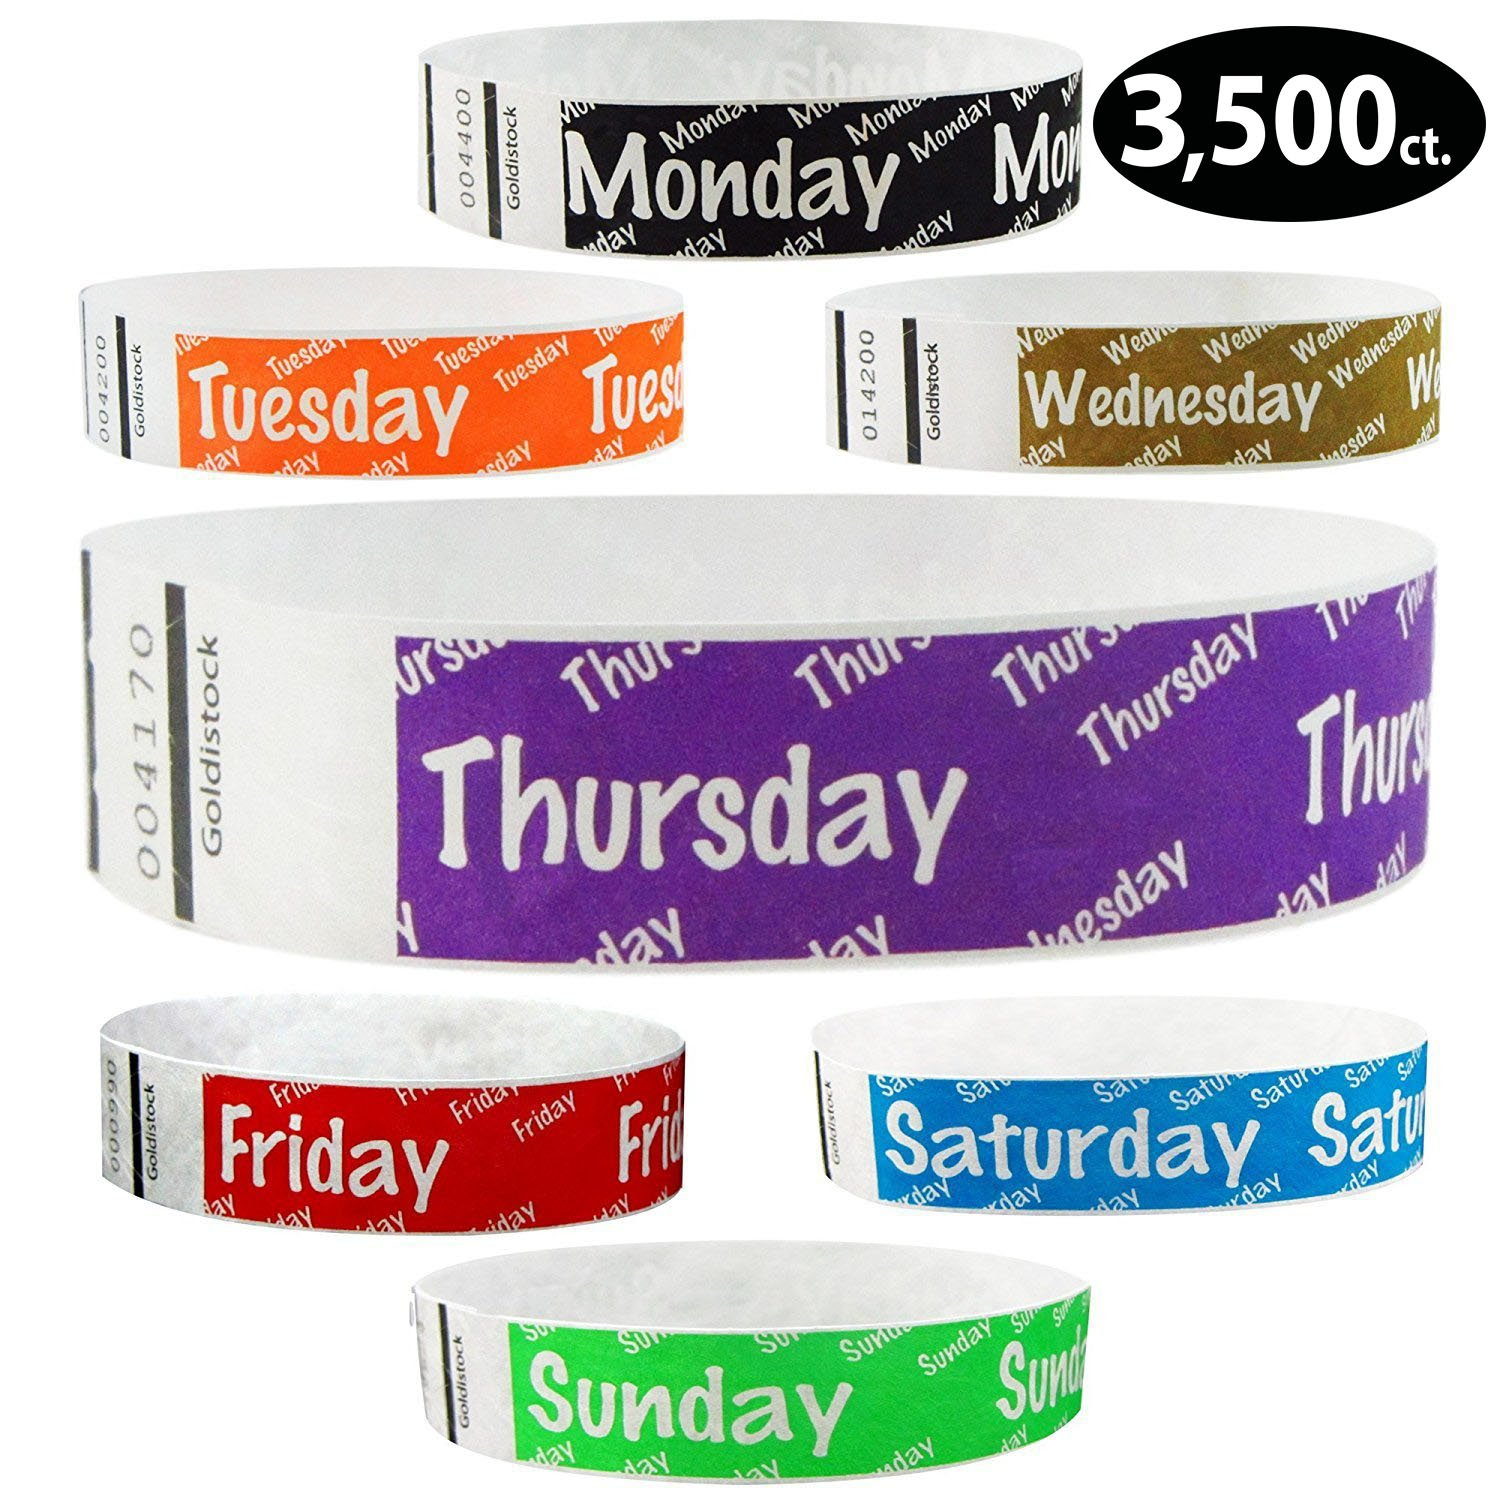 Tyvek Wristbands - Goldistock ''The Whole Week'' Variety Pack 3,500 Count - ¾'' Arm Bands - 500 Each: Monday, Tuesday, Wednesday, Thursday, Friday, Saturday, Sunday - Paper-Like Party Durable Armbands by Goldistock